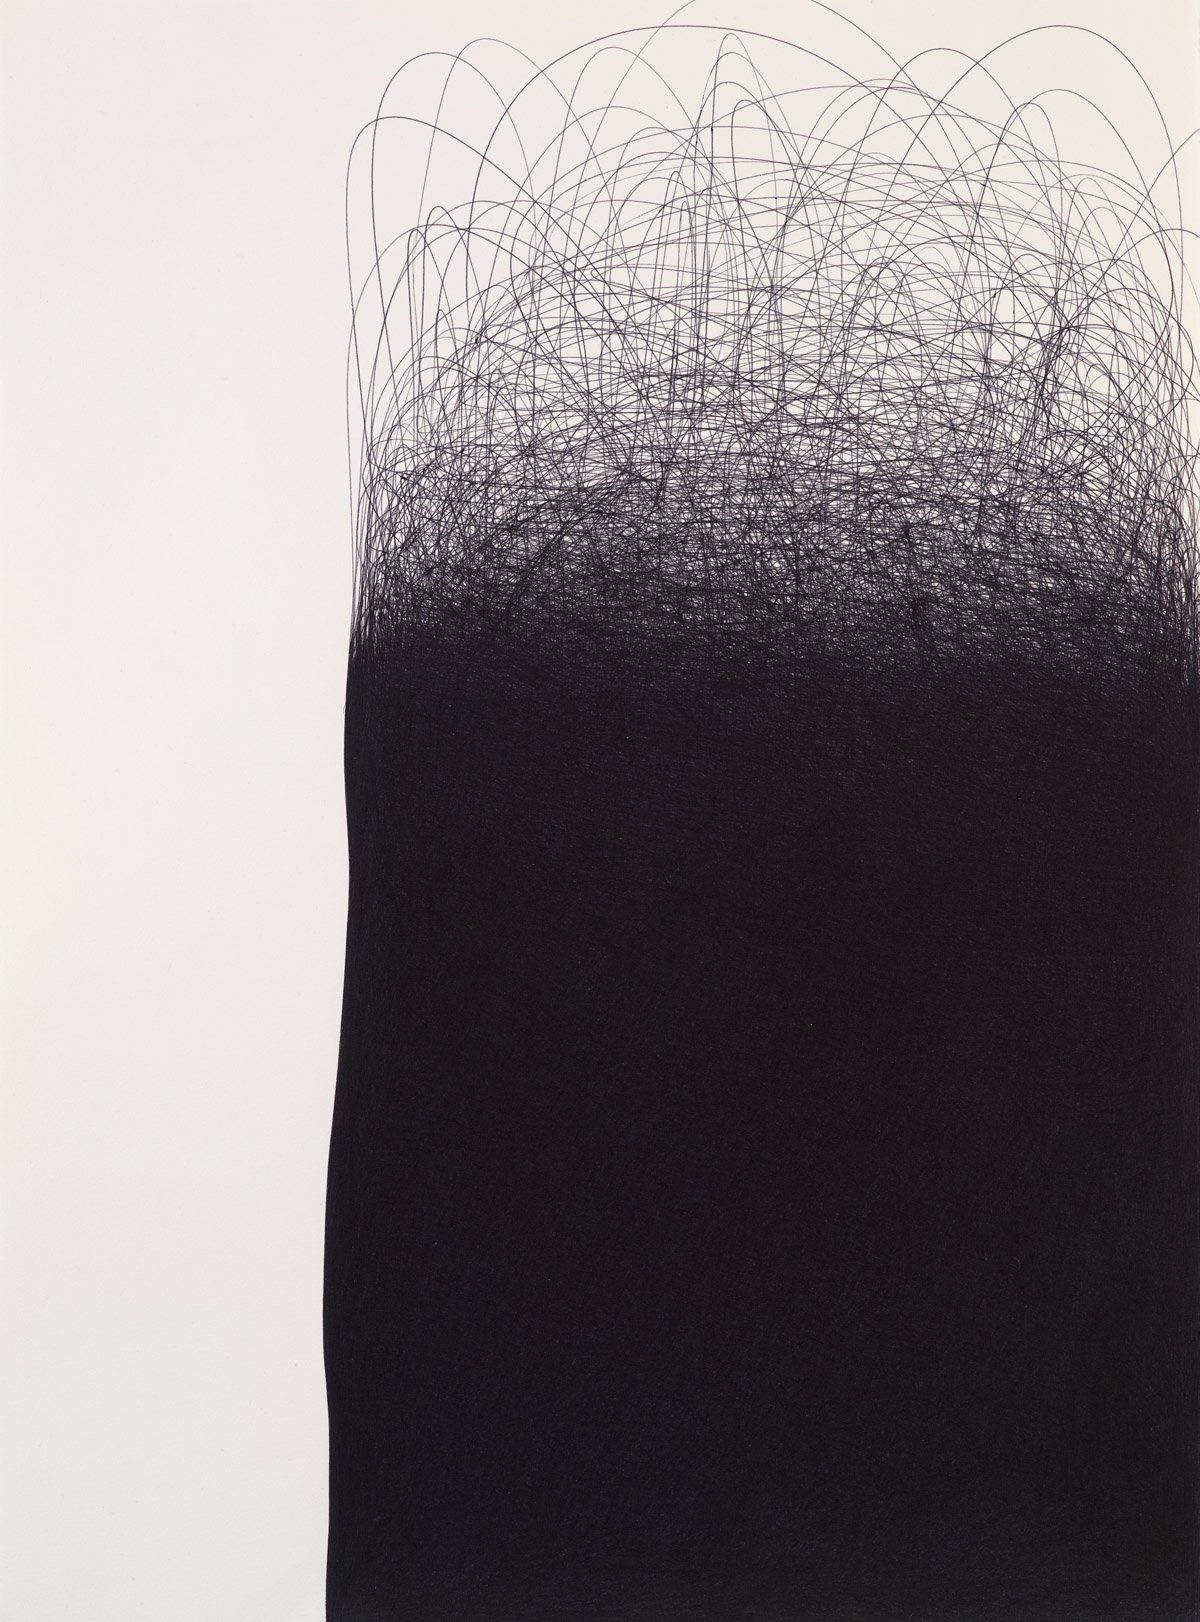 IL LEE, Untitled 1096